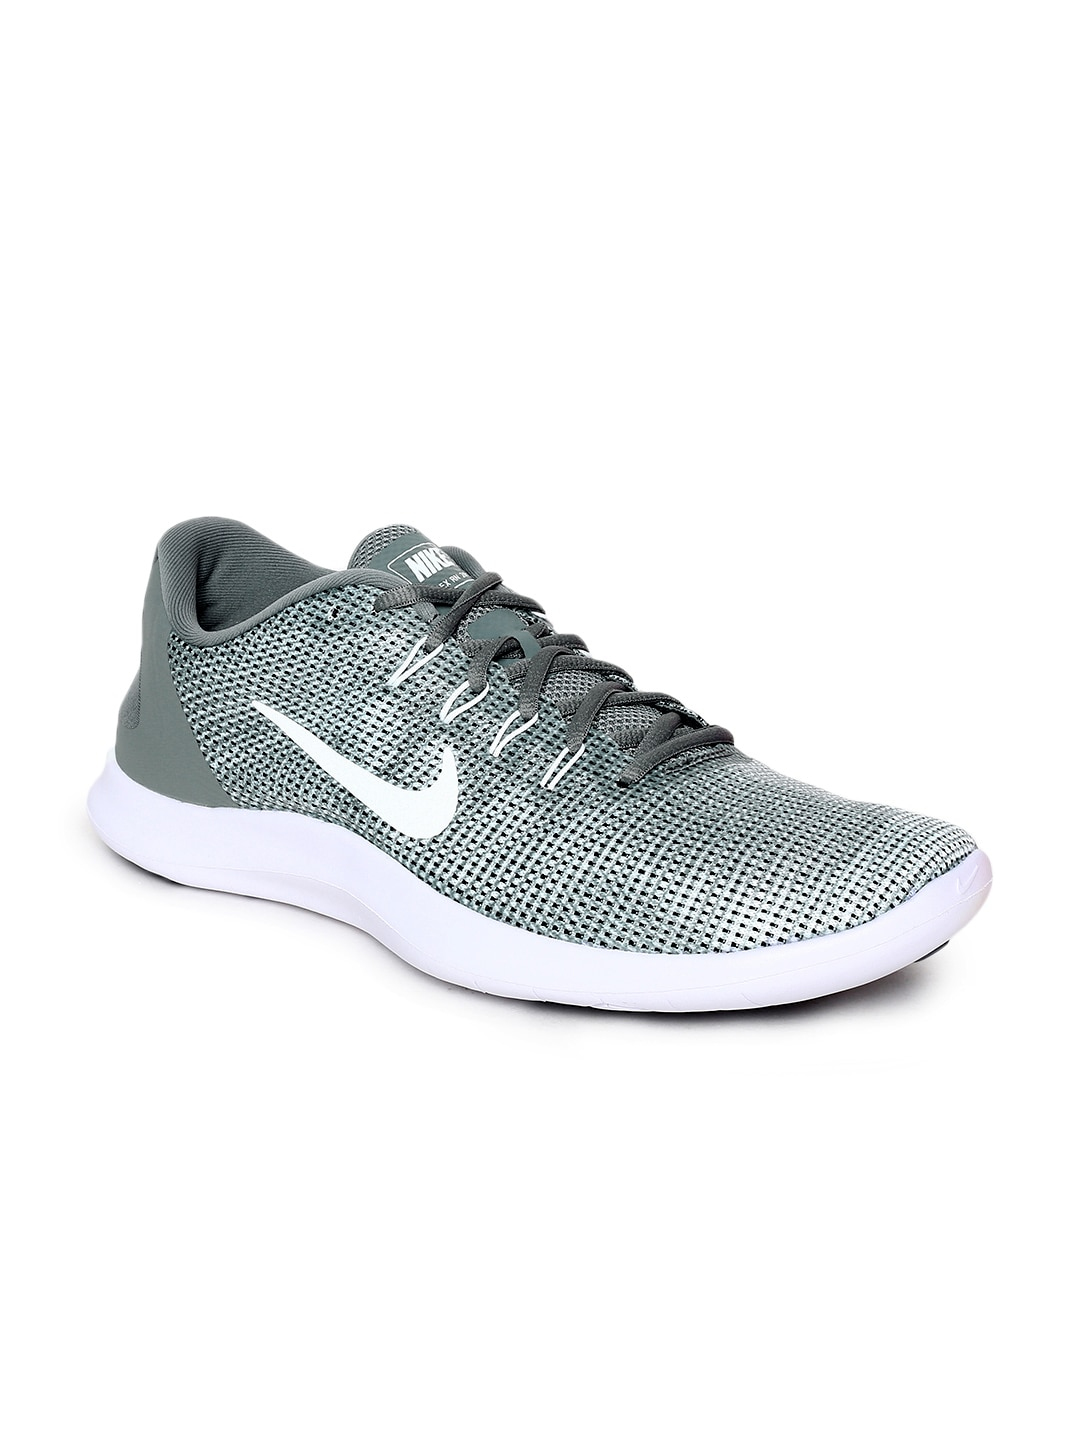 777e208486c33 Nike Shoes - Buy Nike Shoes for Men